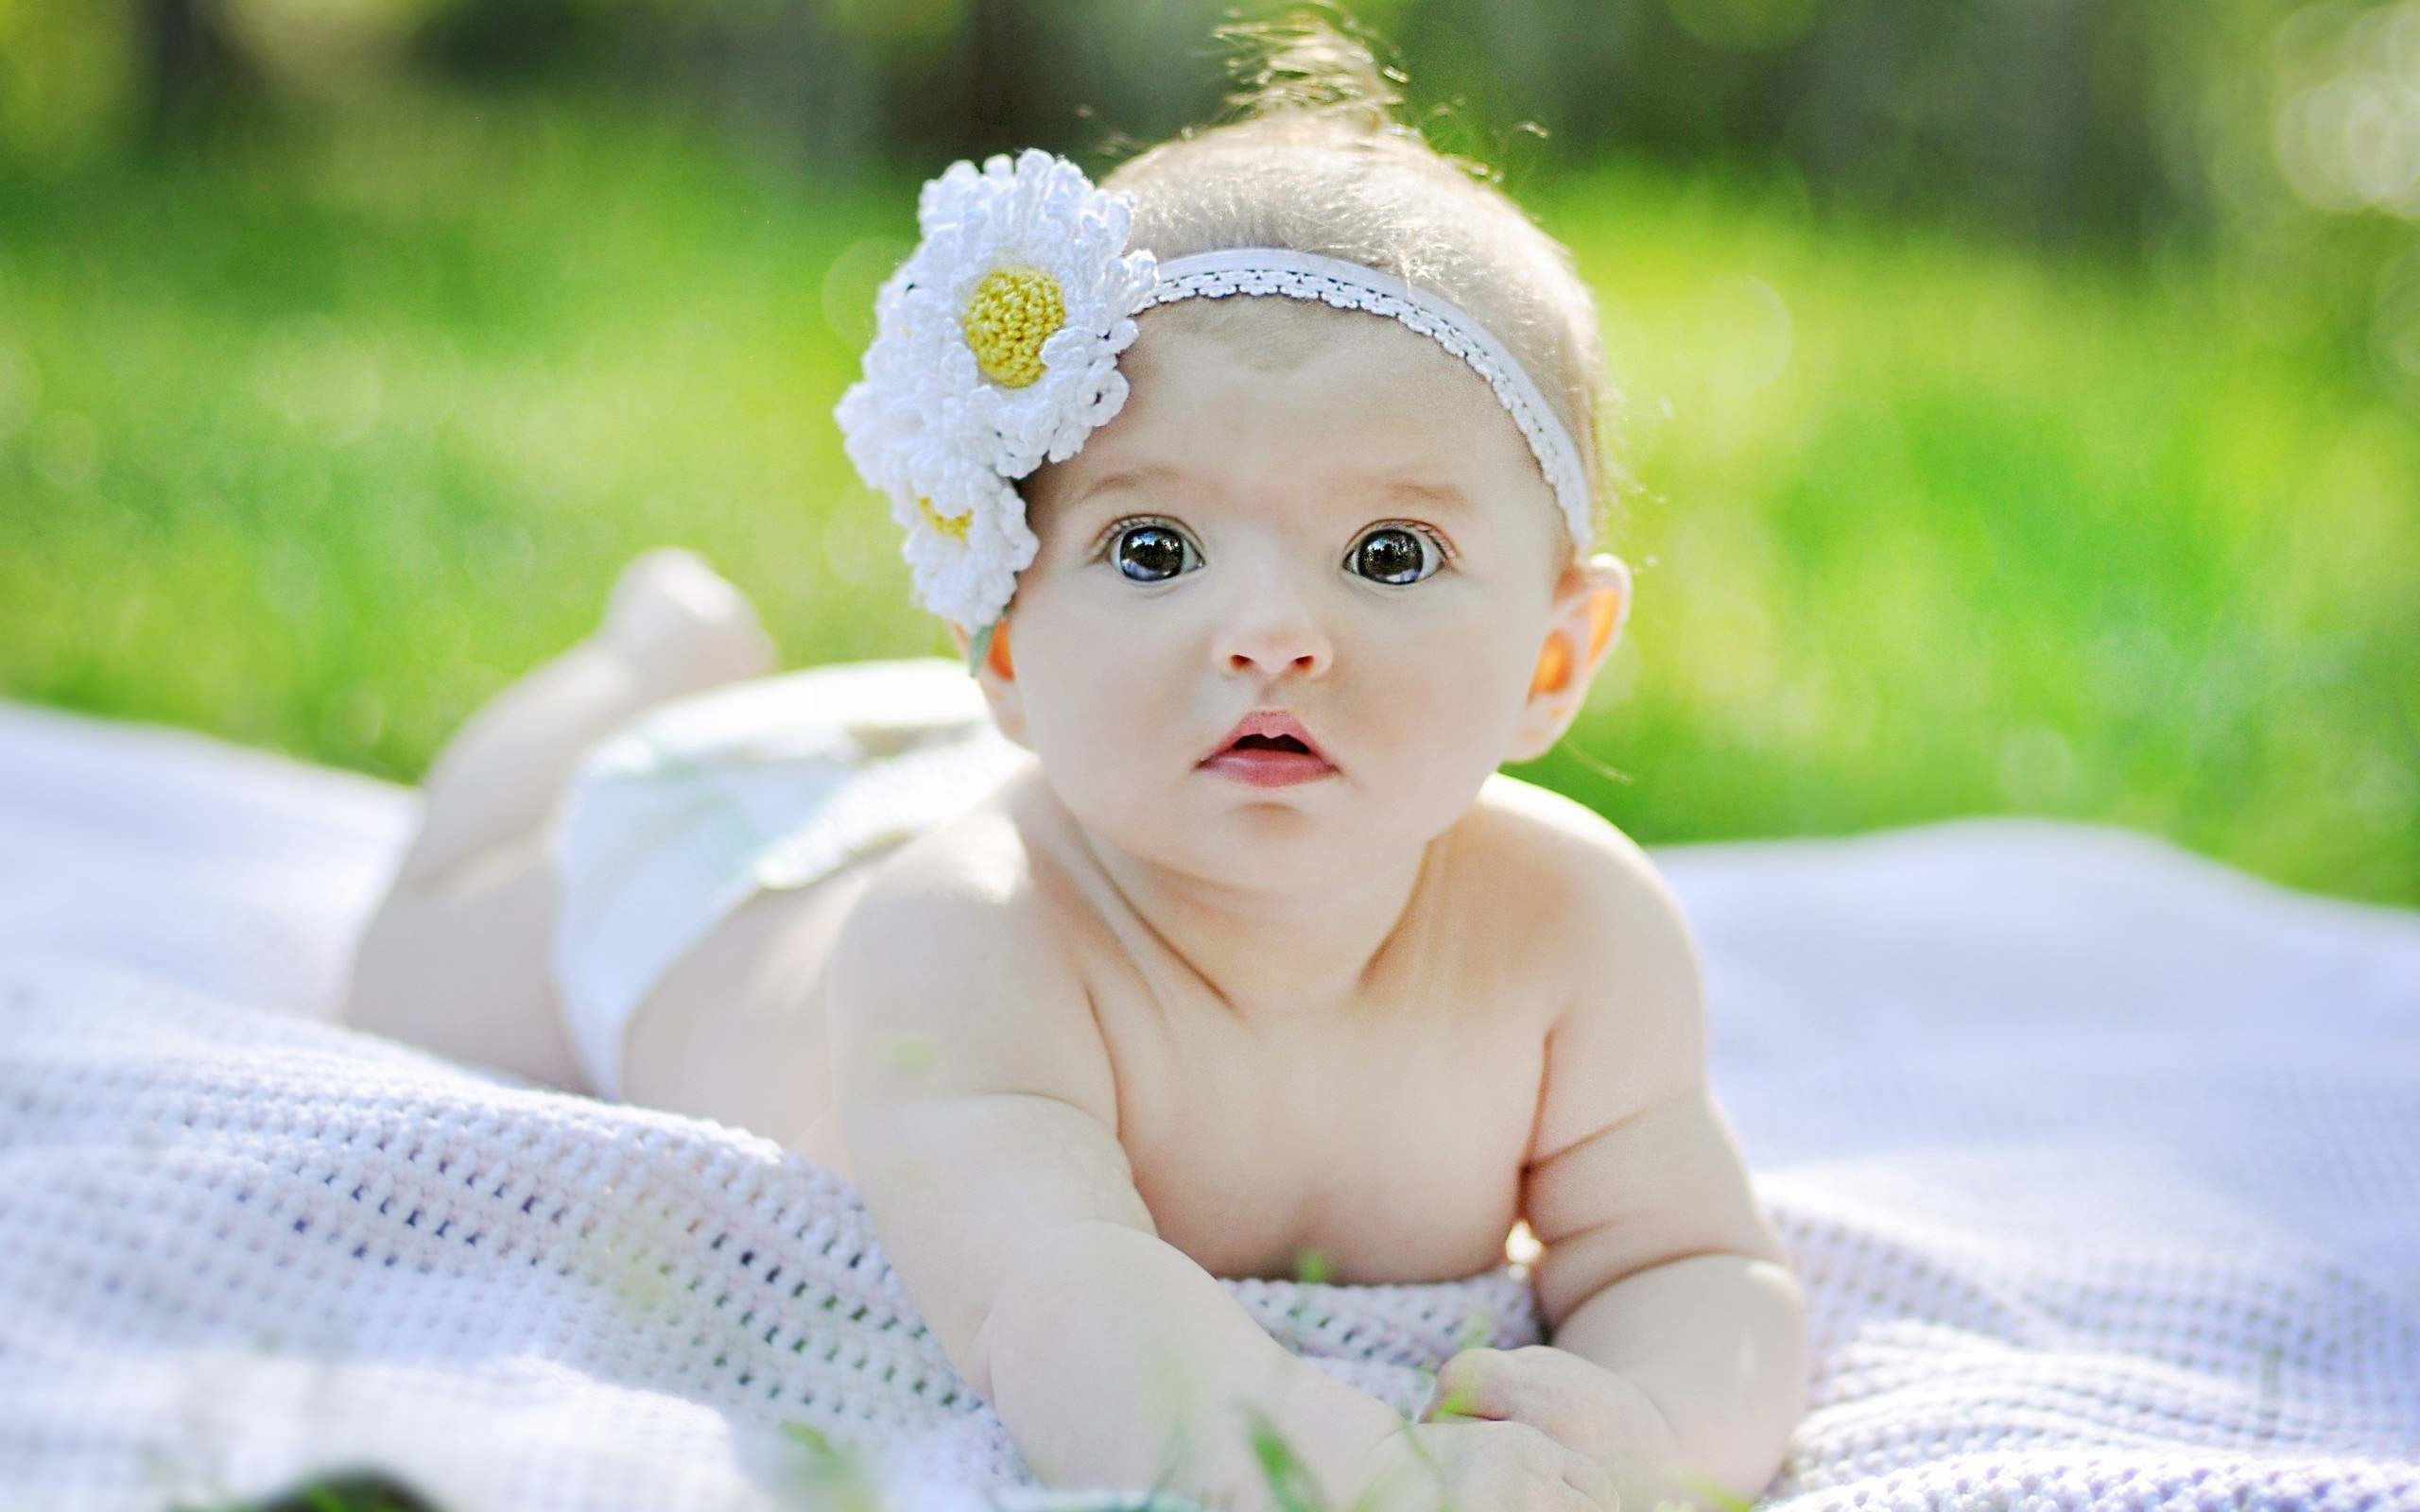 Res: 2560x1600, Cute Baby Pictures Wallpaper New High Resolution Backgrounds Girl Hd For  Desktop Laptop Mobile With Smartphone Girls